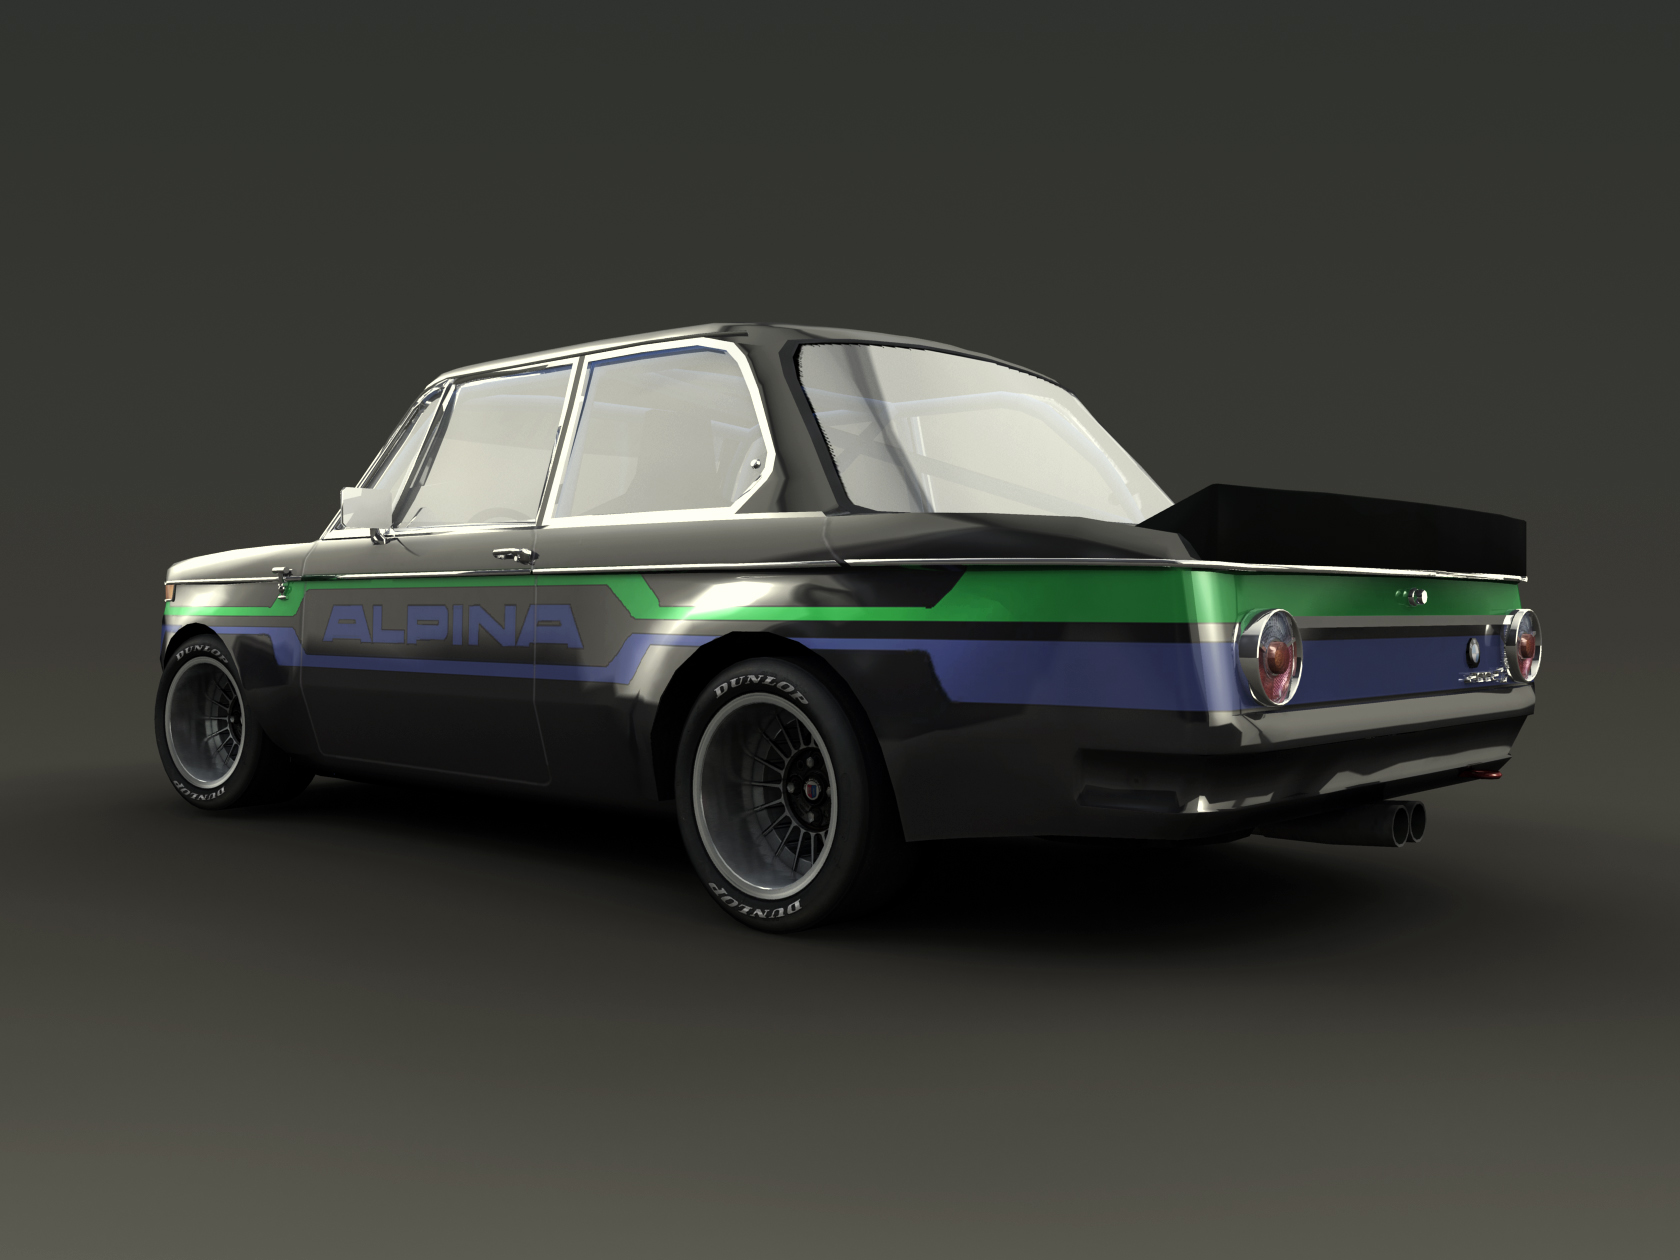 Bmw 2002 Tii Race Car >> BMW 2002 Tii for GT Legends – Lots of New Previews – VirtualR.net – 100% Independent Sim Racing News